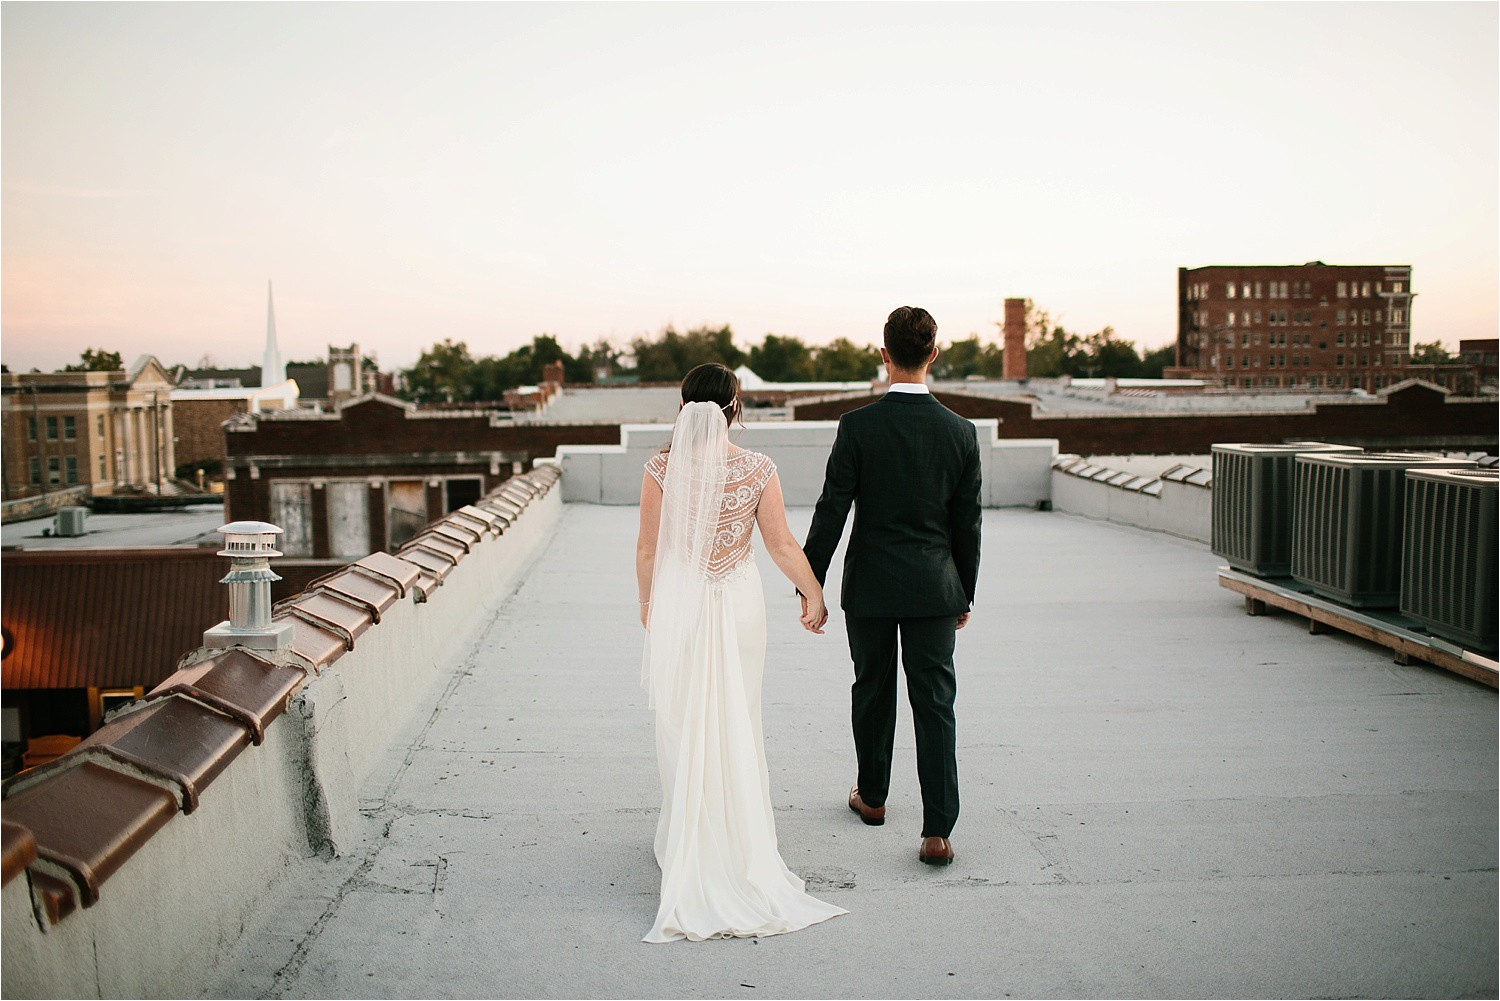 whittney-drew-__-an-intimate-wine-and-navy-wedding-in-an-industrial-venue-at-loft-123-in-paris-tx-by-north-texas-wedding-photographer-rachel-meagan-photography-_-084